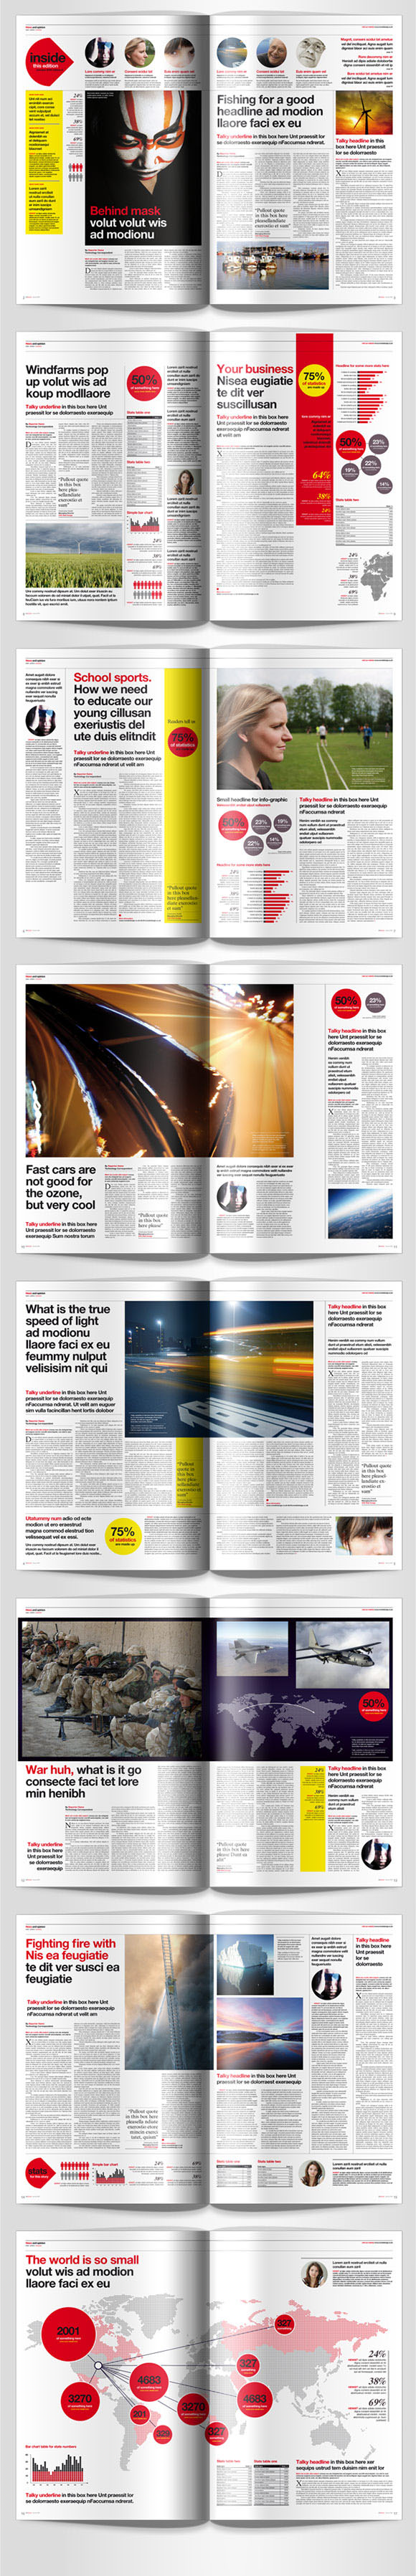 InDesign newspaper magazine template pages